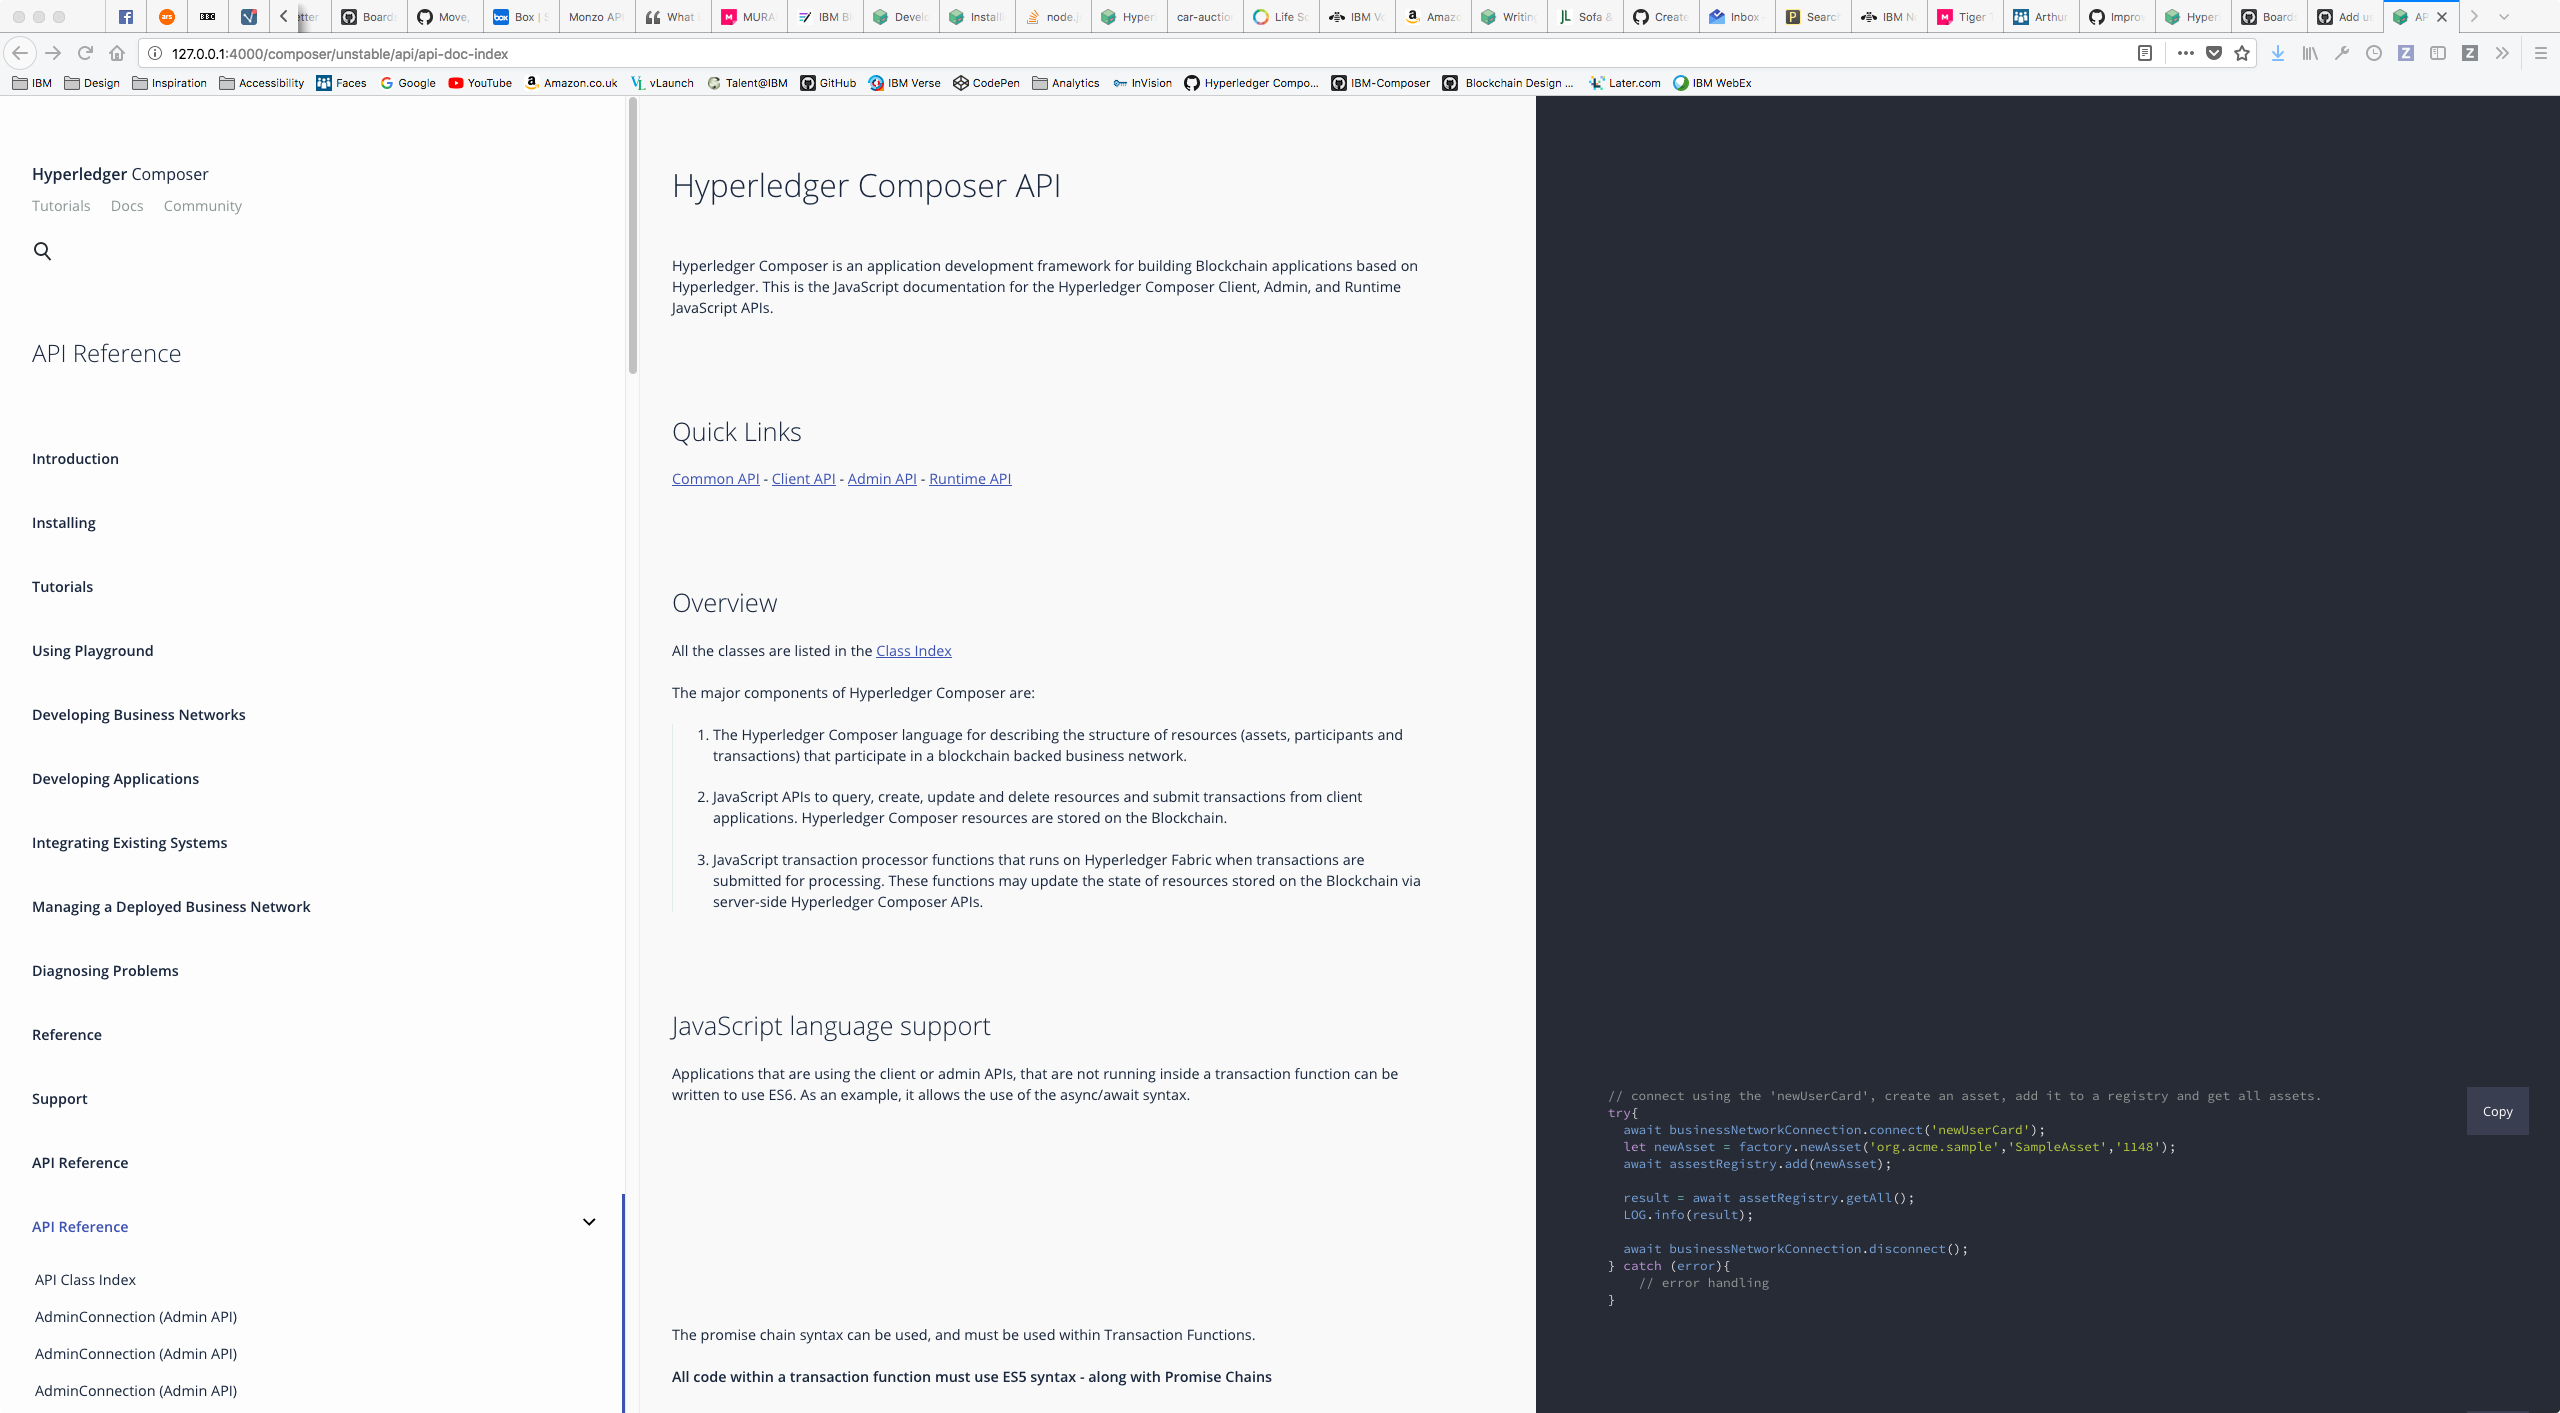 Restructure the API documentation so it is easier to understand